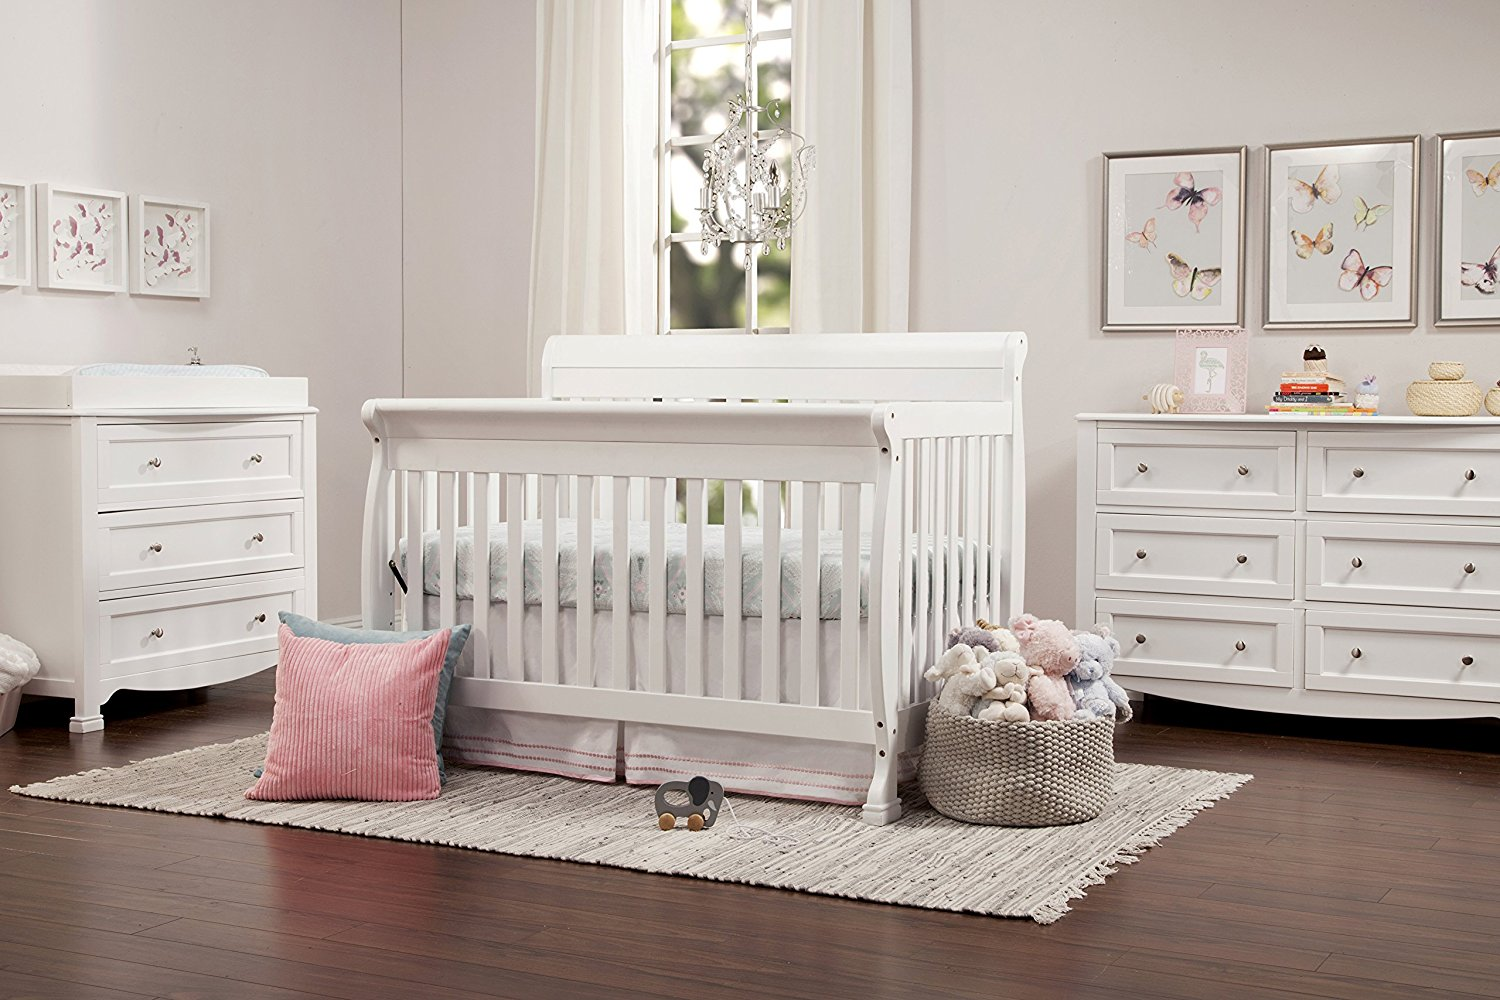 Restoration Hardware Cribs | Greenguard Cribs | Baby Crib Carousel